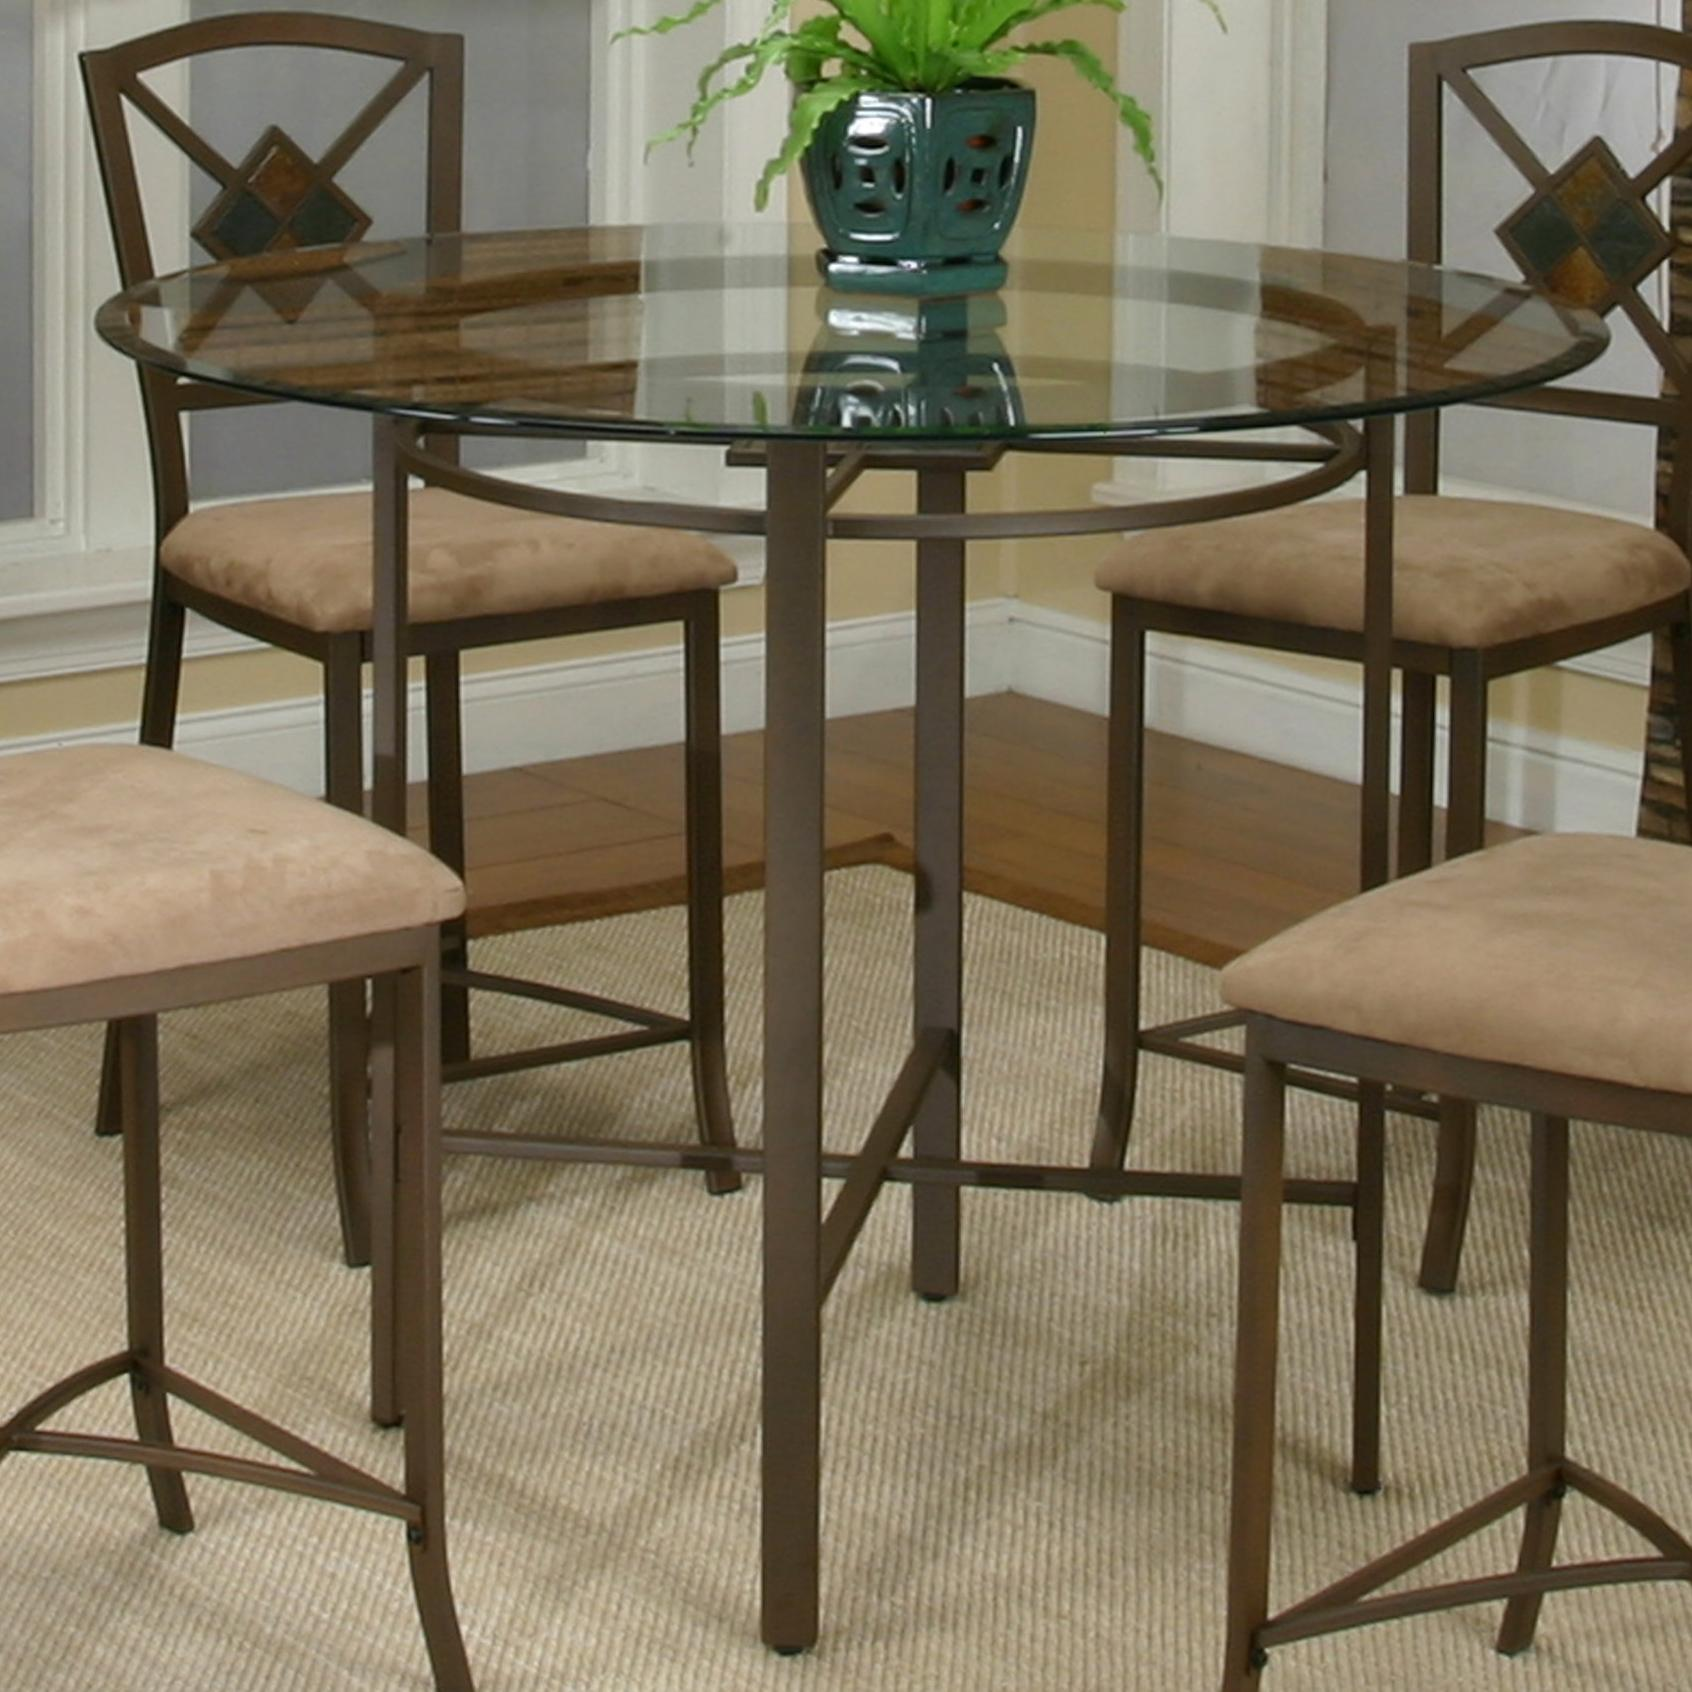 Exceptional Glass Pub Table Part - 5: Metal Pub Table W/ Glass Top